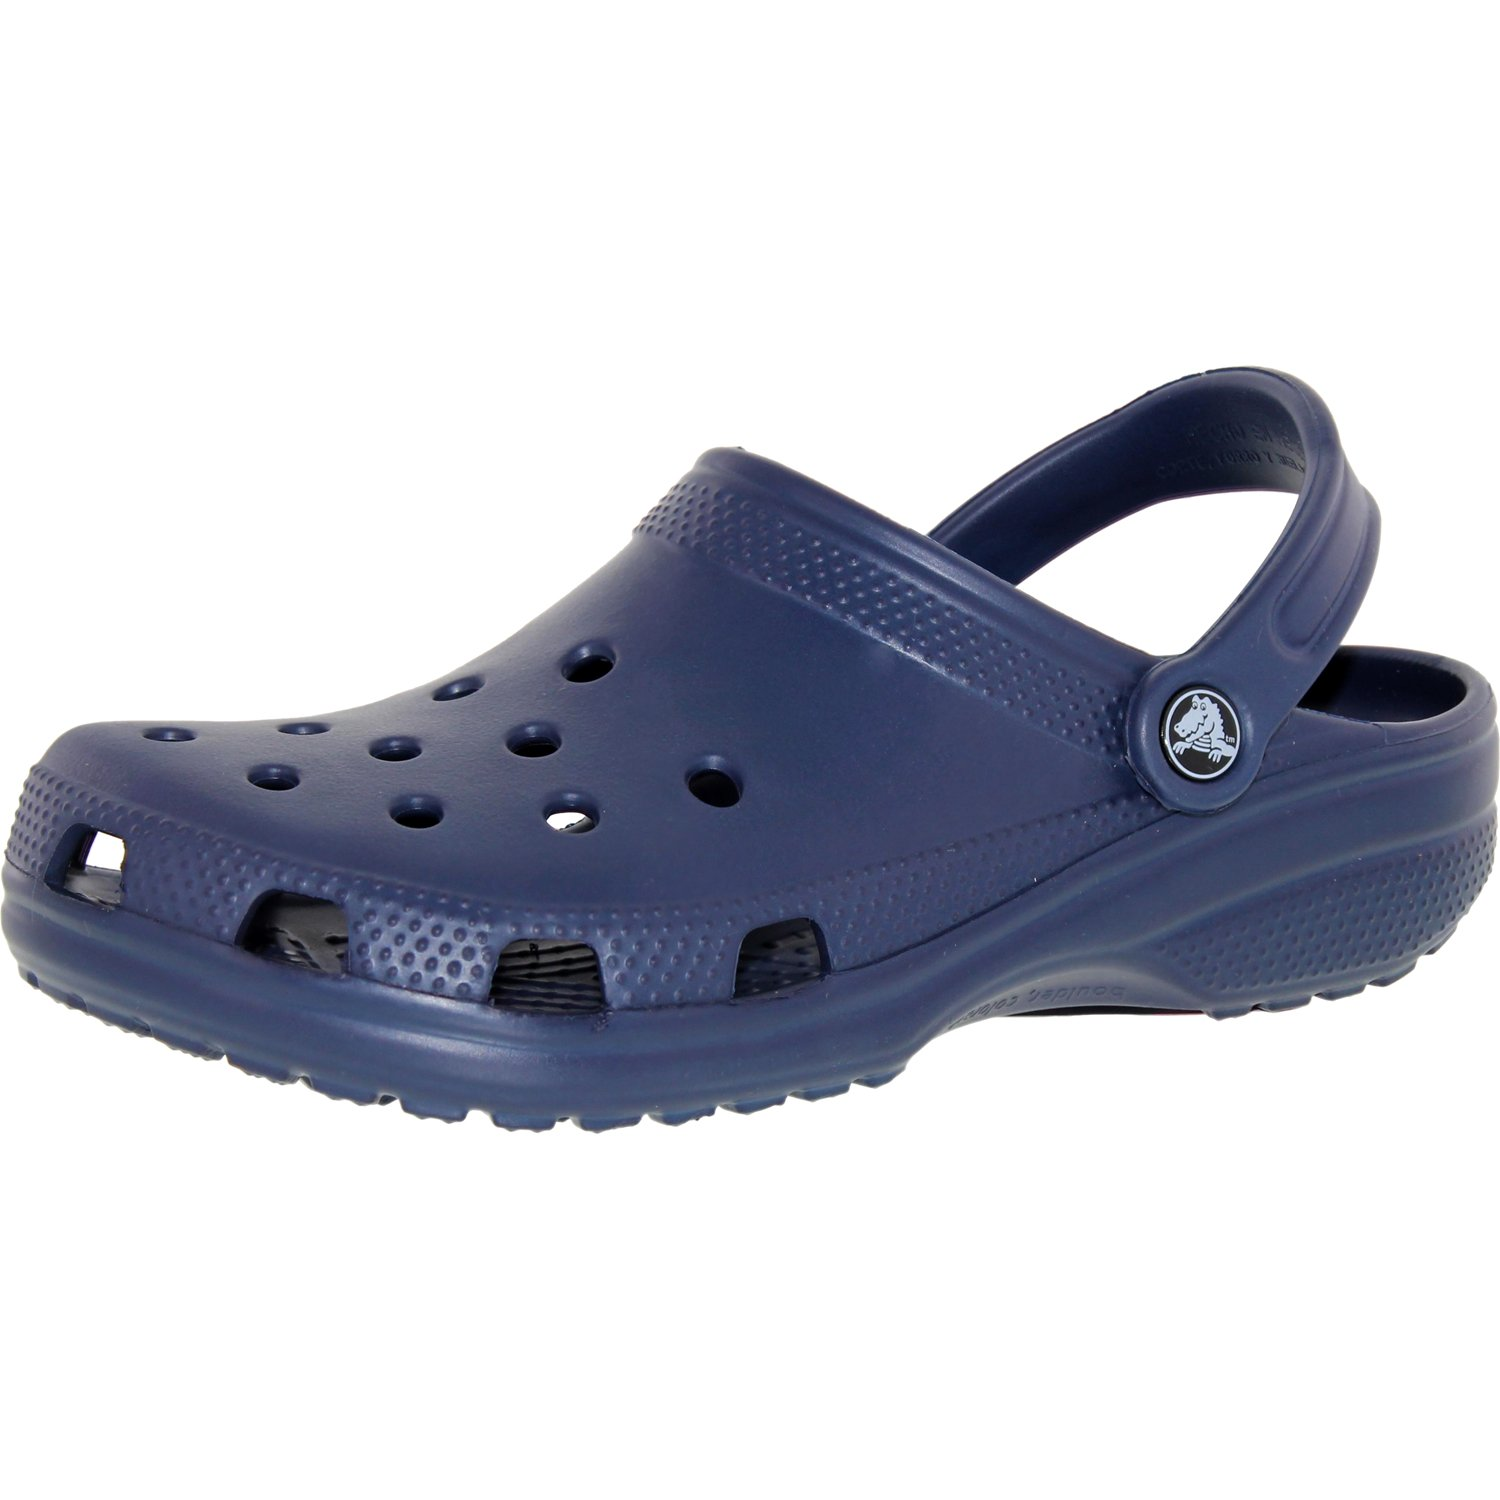 Crocs Men's Classic Navy Ankle-High Rubber Sandal - 5M